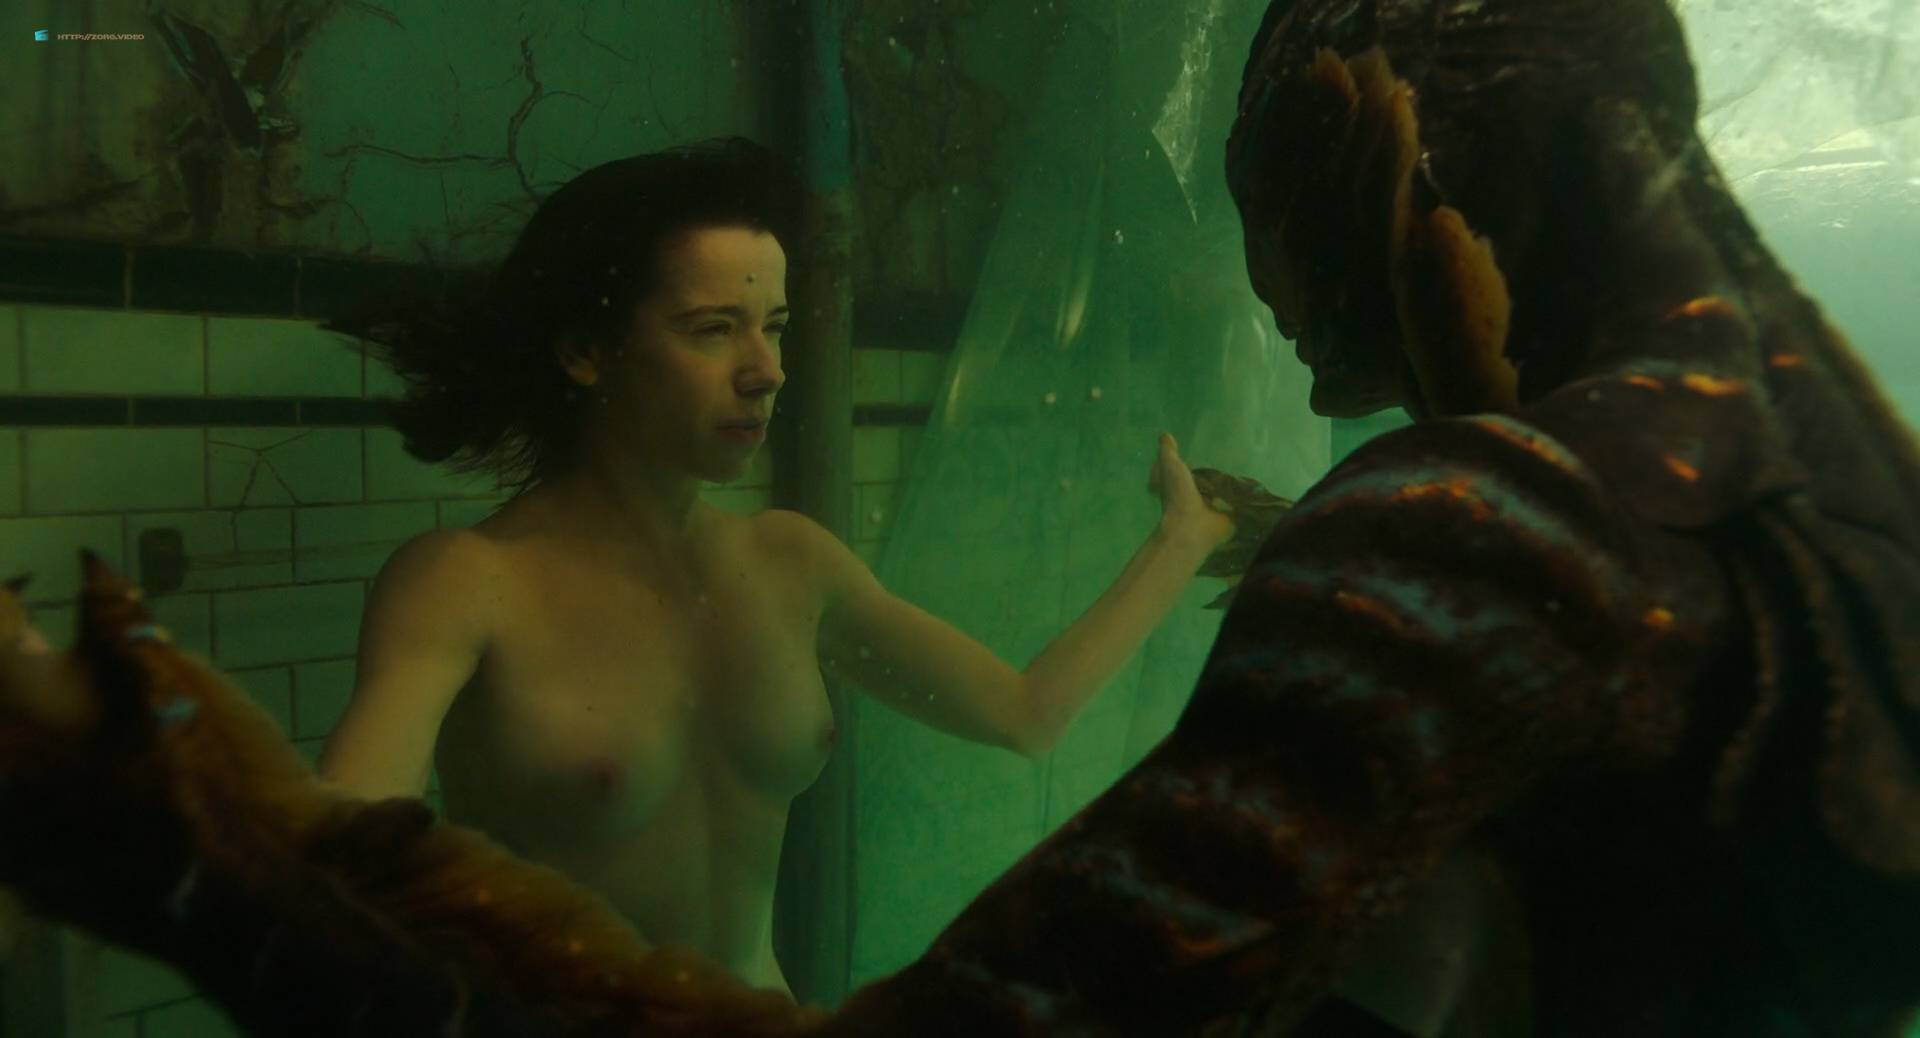 Sally-Hawkins-nude-bush-butt-Lauren-Lee-Smith-nude-boob-and-sex-The-Shape-of-Water-2017-HD-1080p-018.jpg